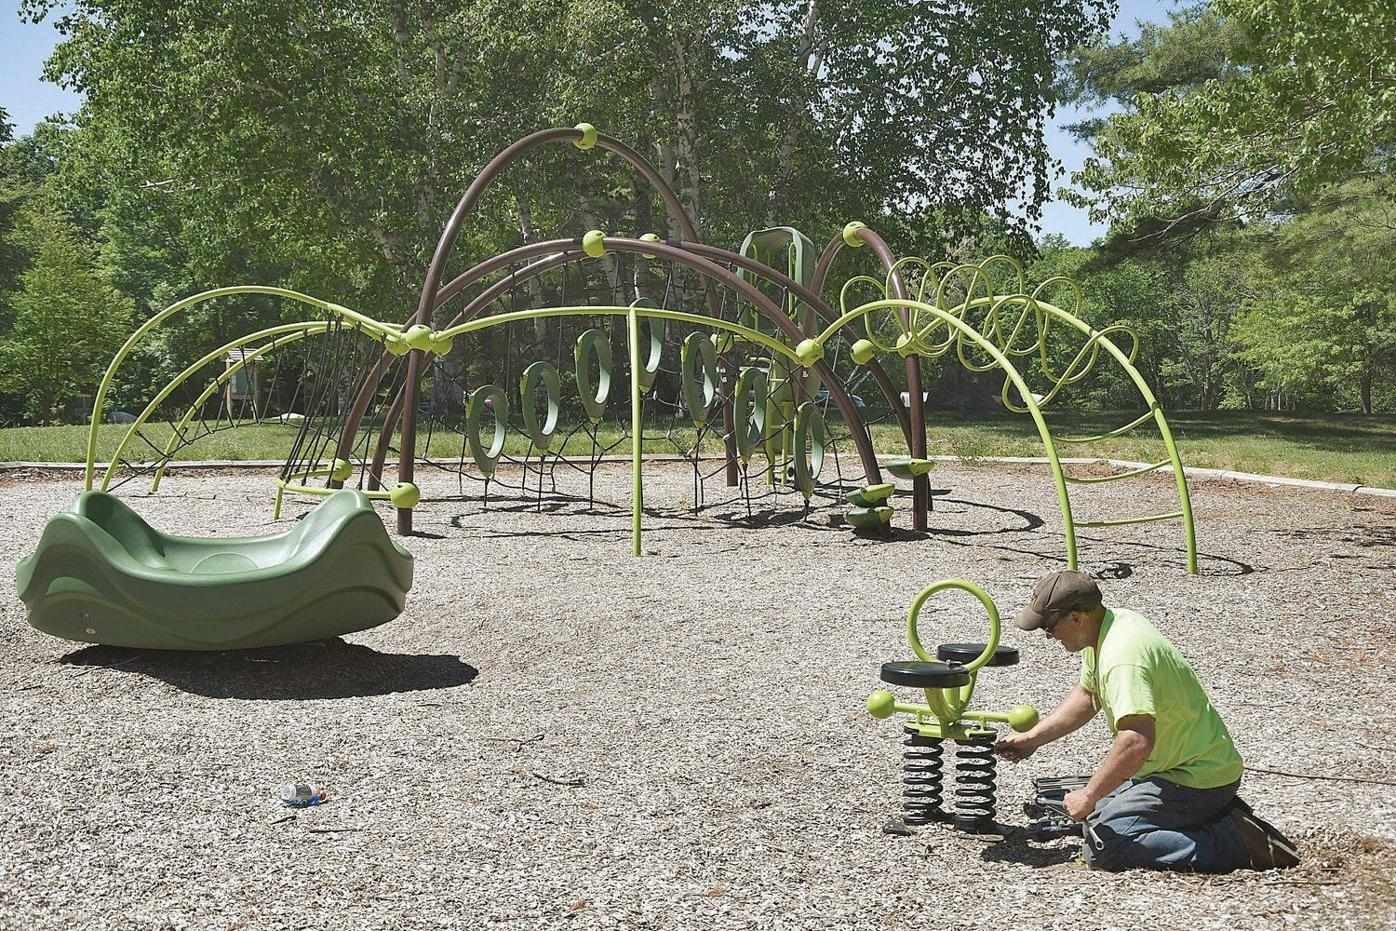 Playing it safe: How Berkshire communities are handling playgrounds, parks reopening